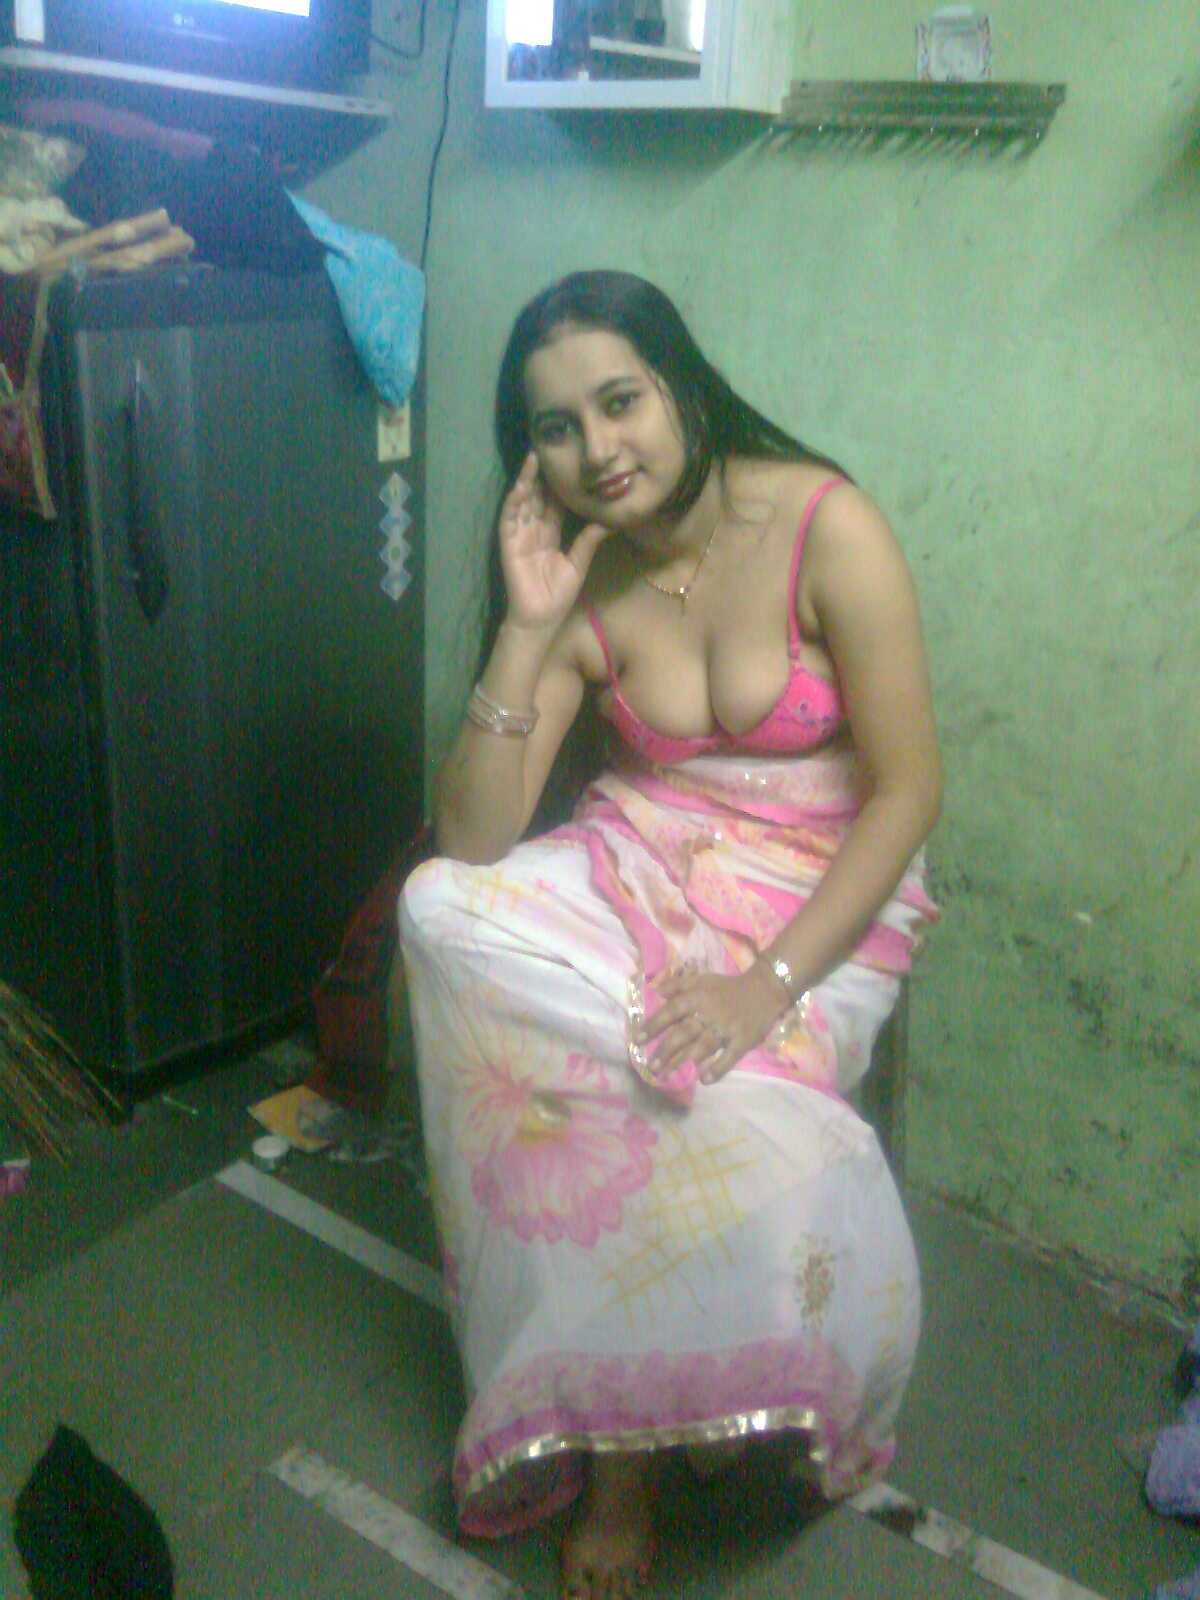 Desi Indian Bhabhi Big Boobs Shaved Pussy Naked Hot-7078